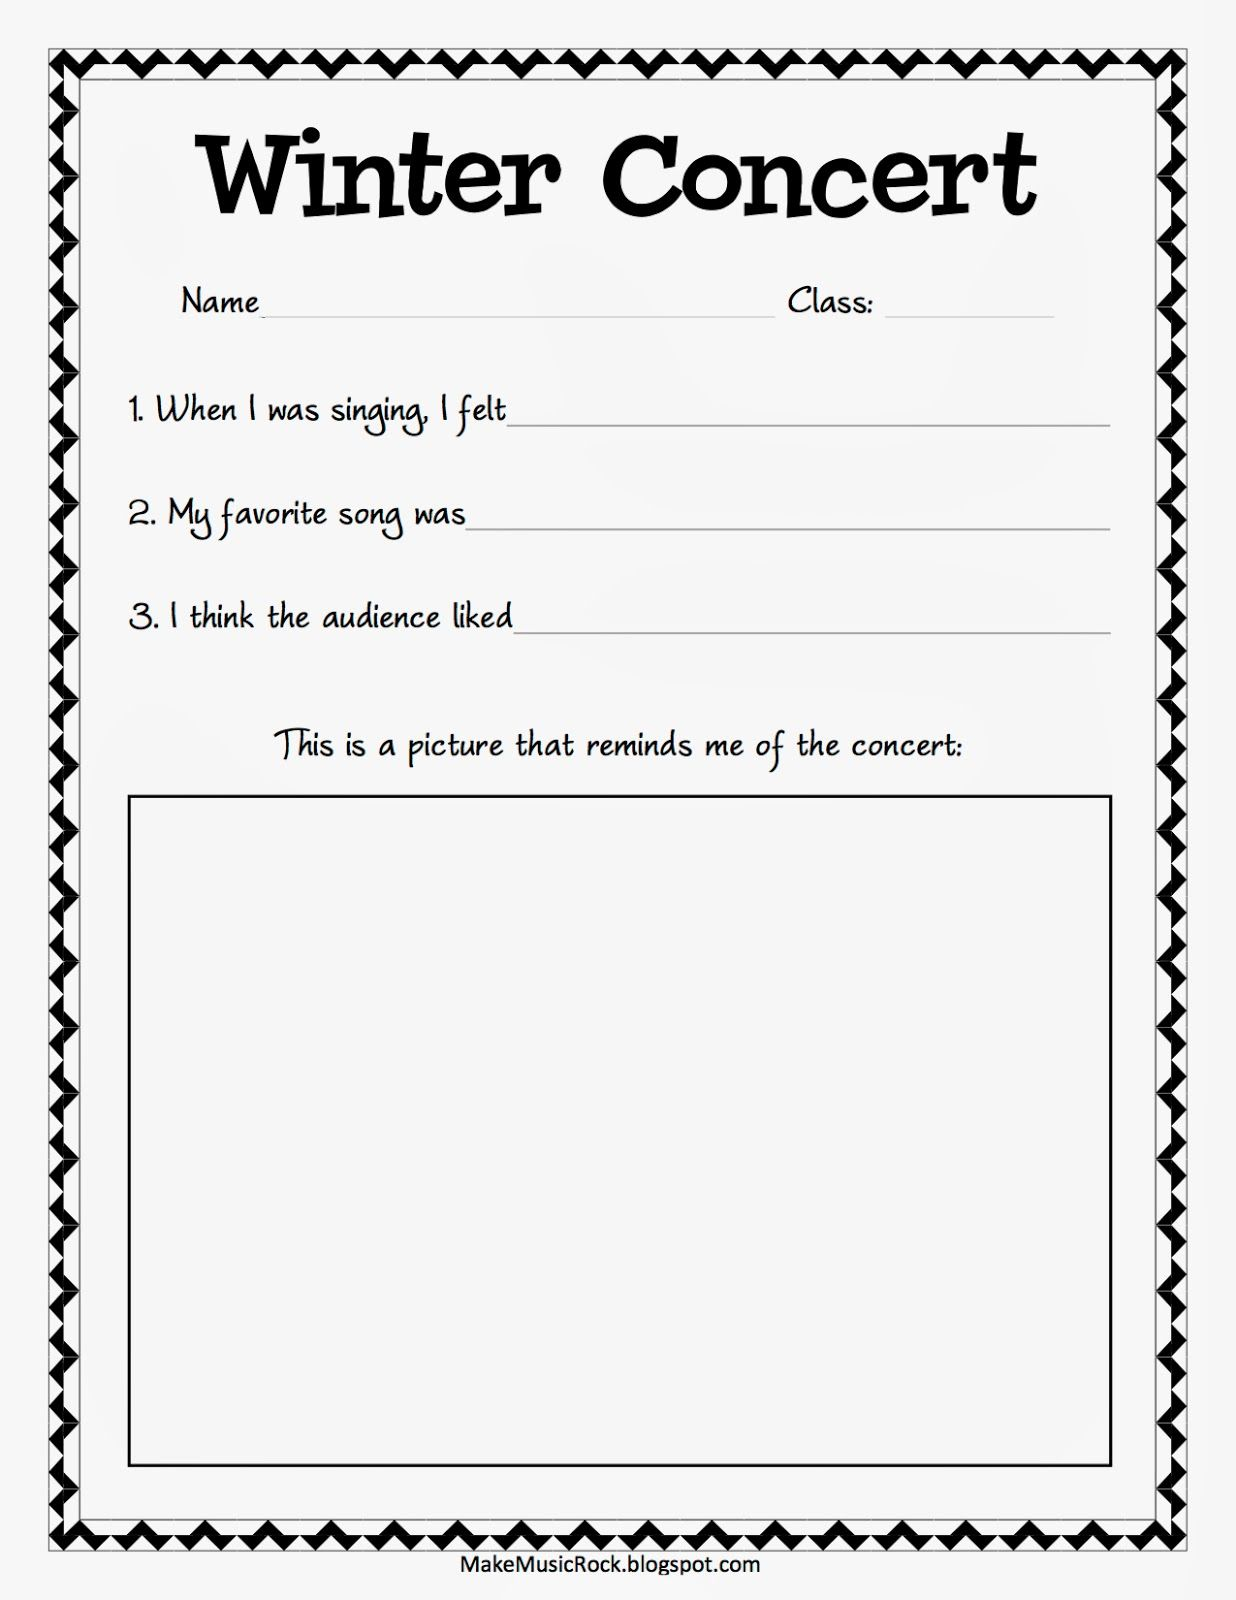 Make Music Rock Winter Concert Reflections Simplified